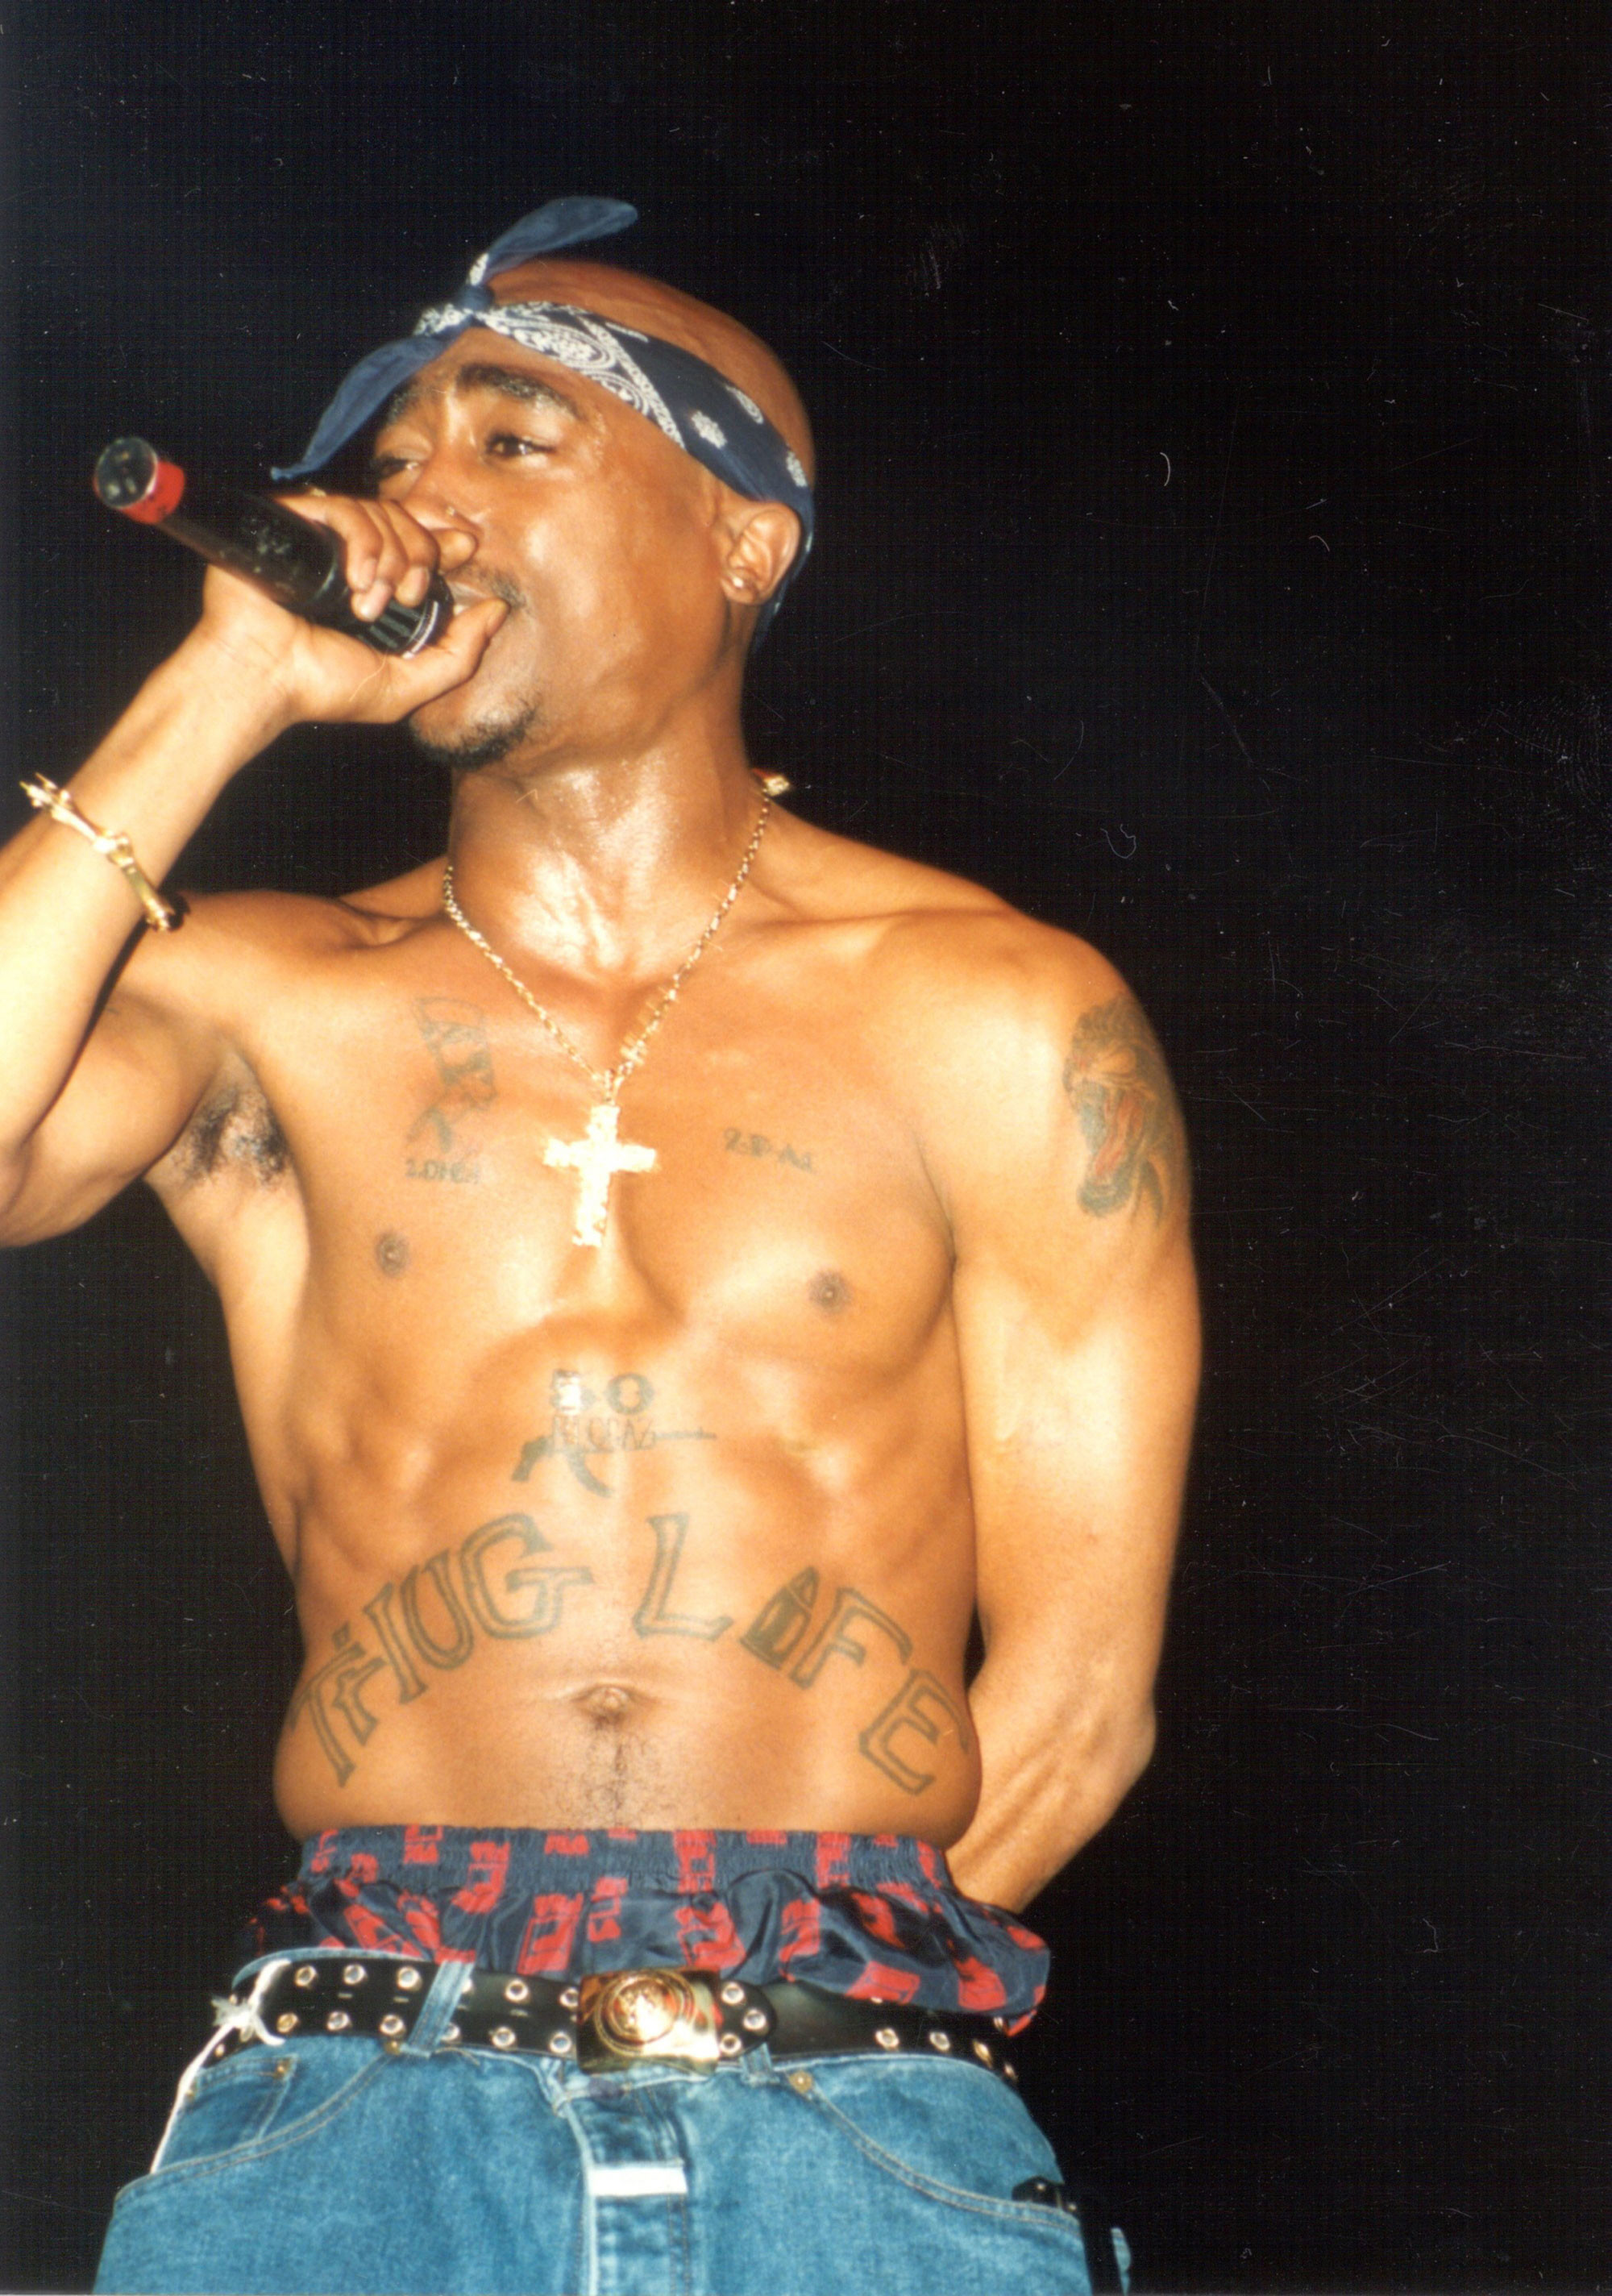 Tupac Shakur, even tho he is gone.. still one of the sexist men